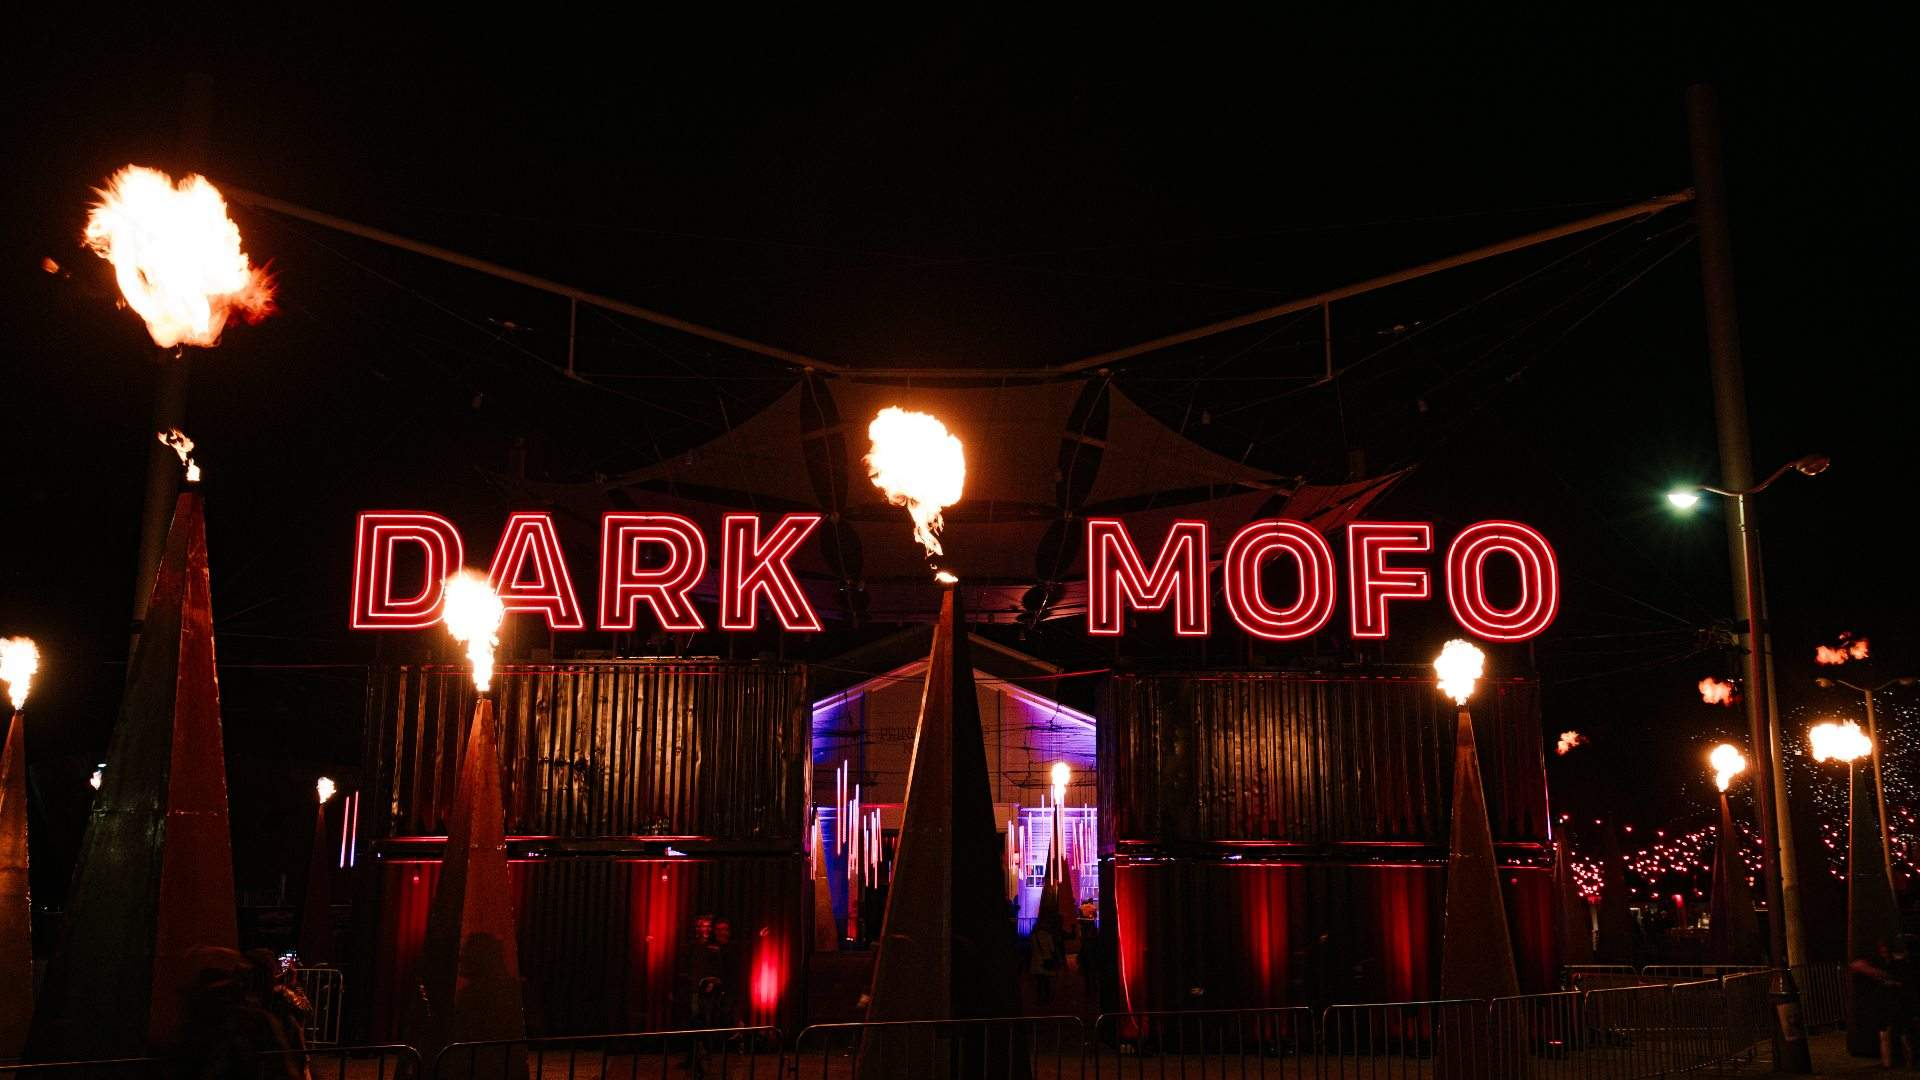 Tasmanian Arts Festival Dark Mofo Is Returning This Winter and Has Announced Its 2021 Dates